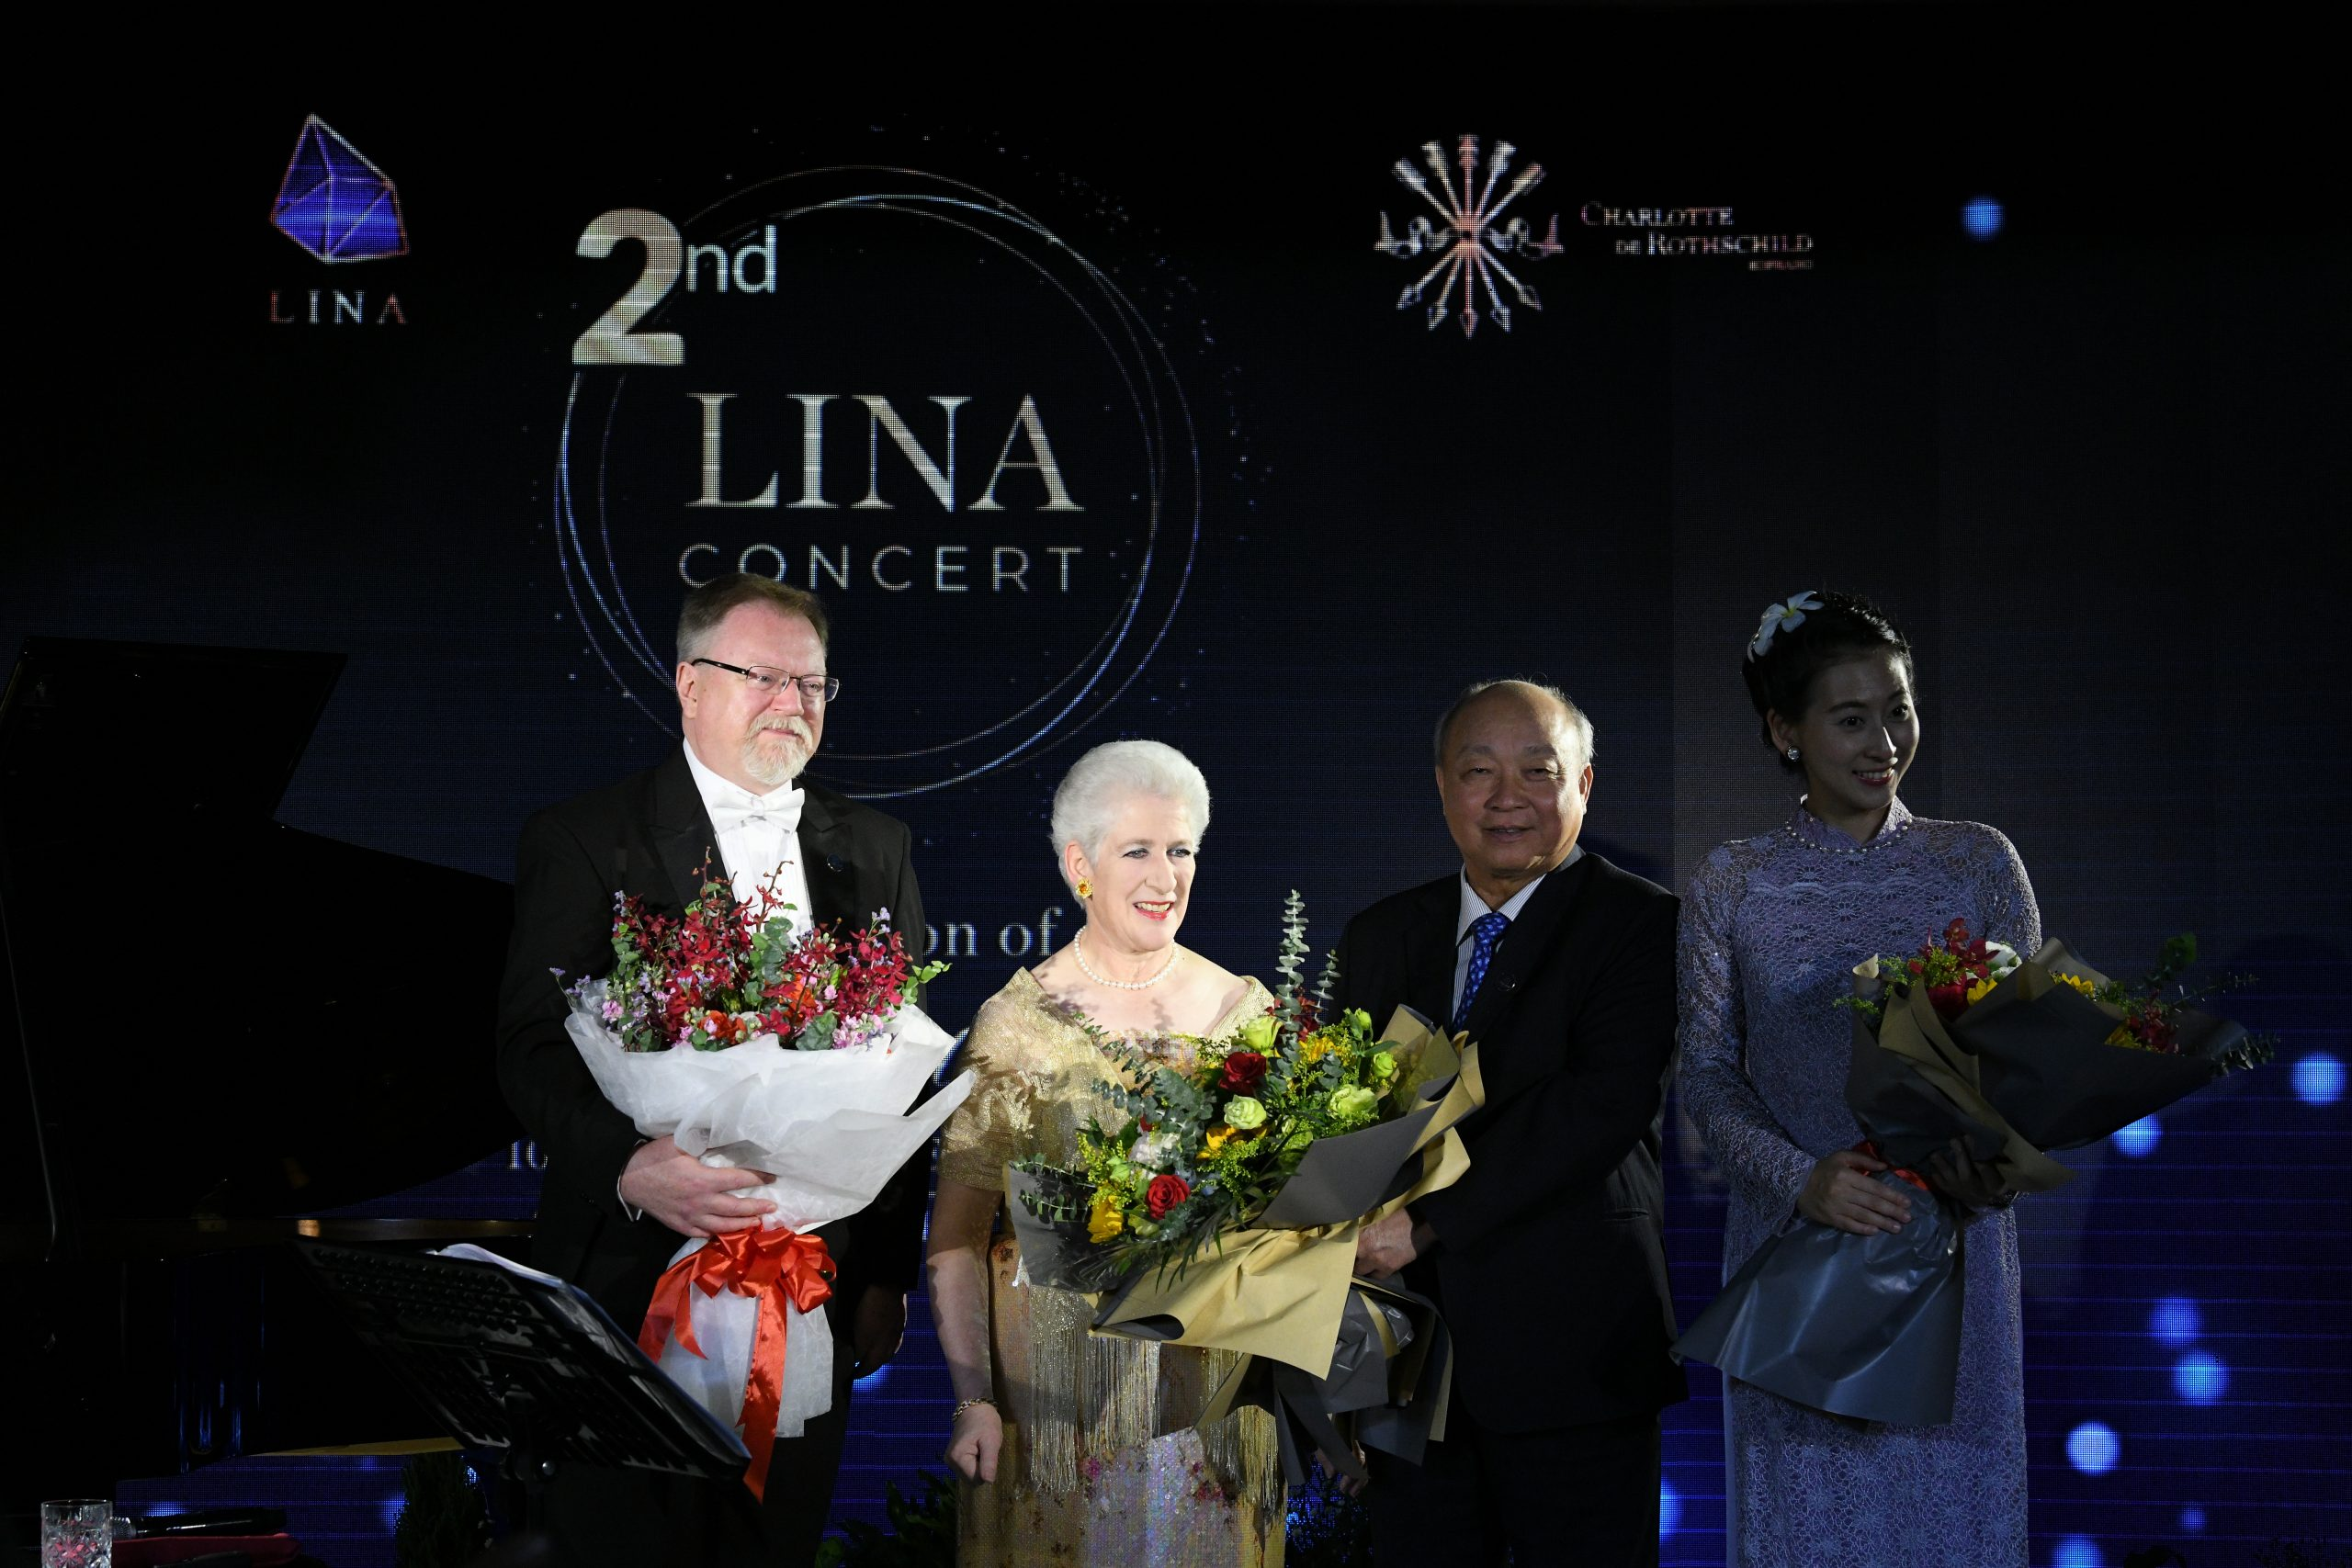 Lina 2nd Concert: Passion of Rothschild 2019 in Thailand